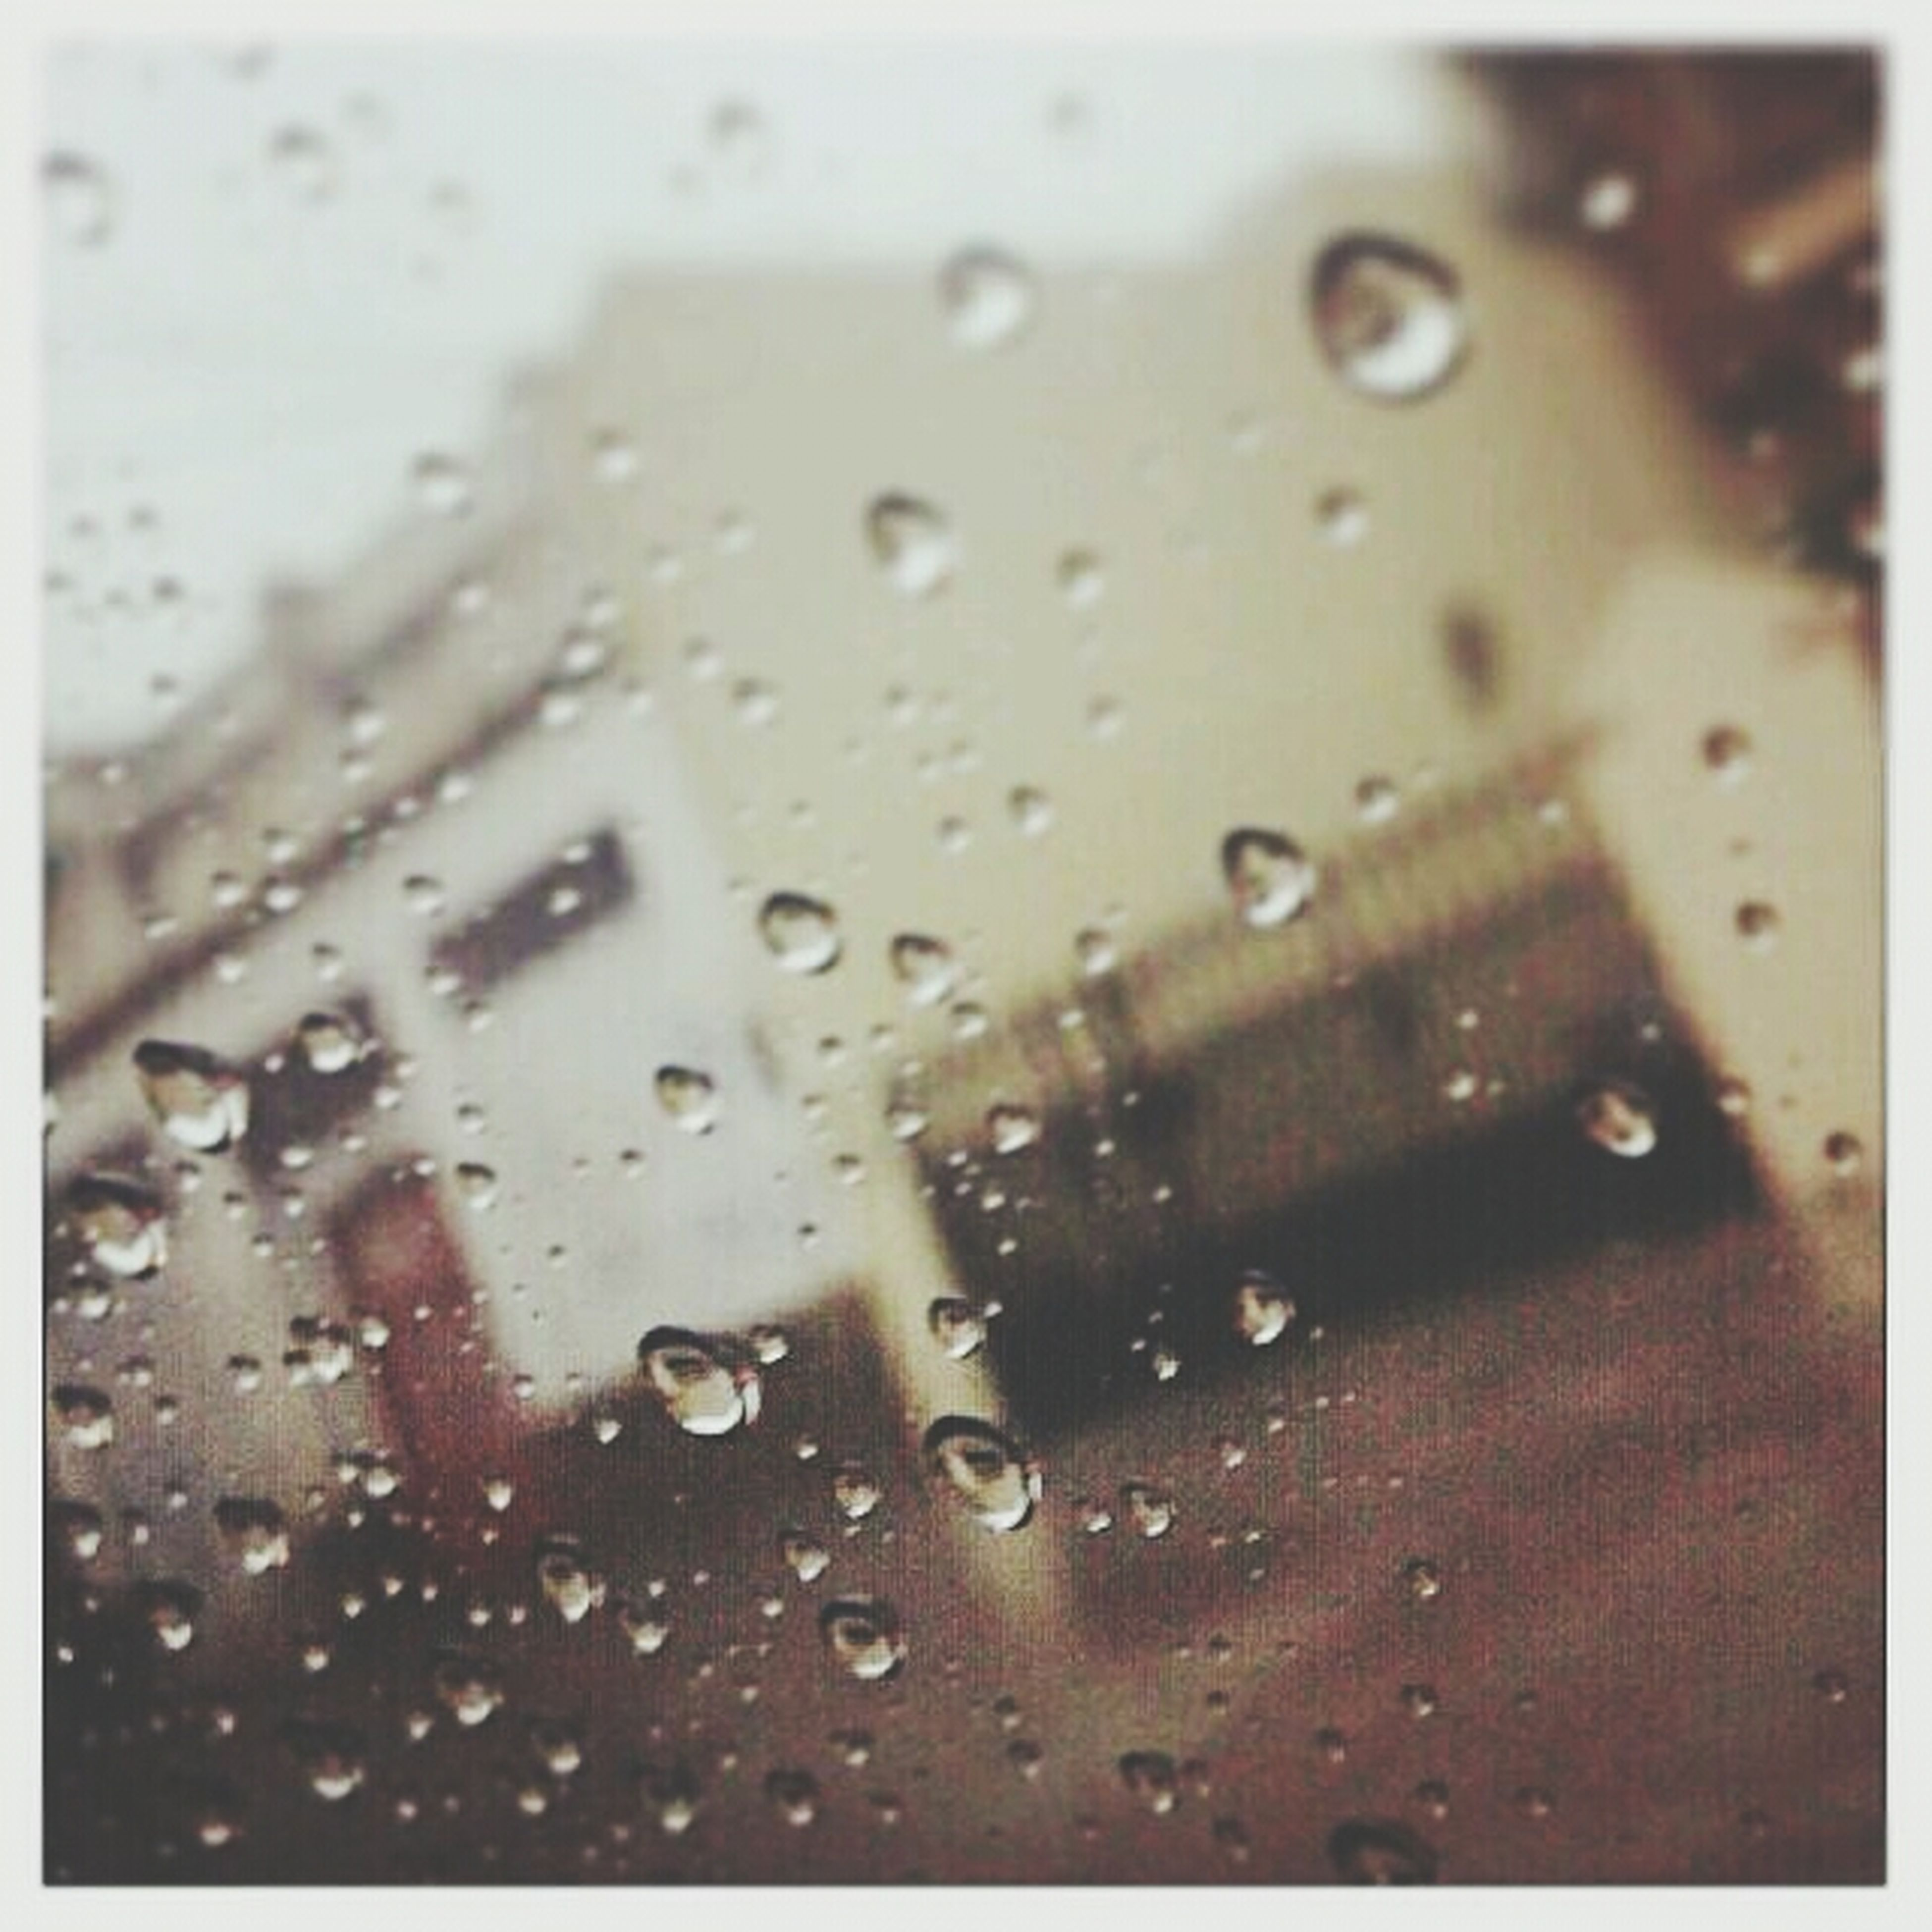 drop, wet, water, rain, window, raindrop, transparent, glass - material, weather, indoors, season, close-up, focus on foreground, water drop, car, glass, monsoon, droplet, full frame, backgrounds